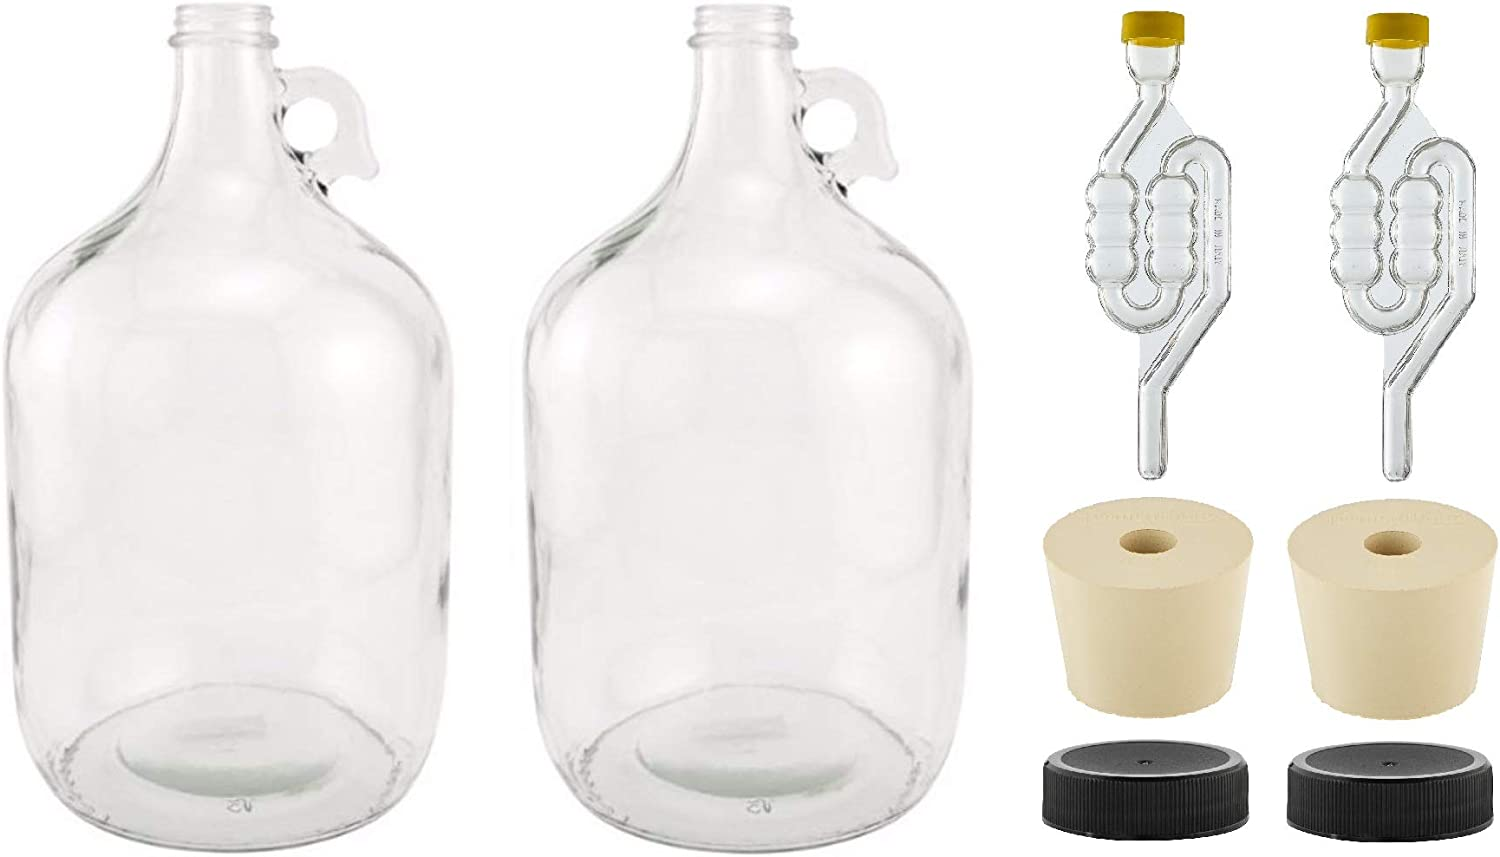 North Mountain Supply 1 Gallon Glass Fermenting Jug with Handle, 6.5 Rubber Stopper, Twin Bubble Airlock, Black Plastic Lid (Set of 2)